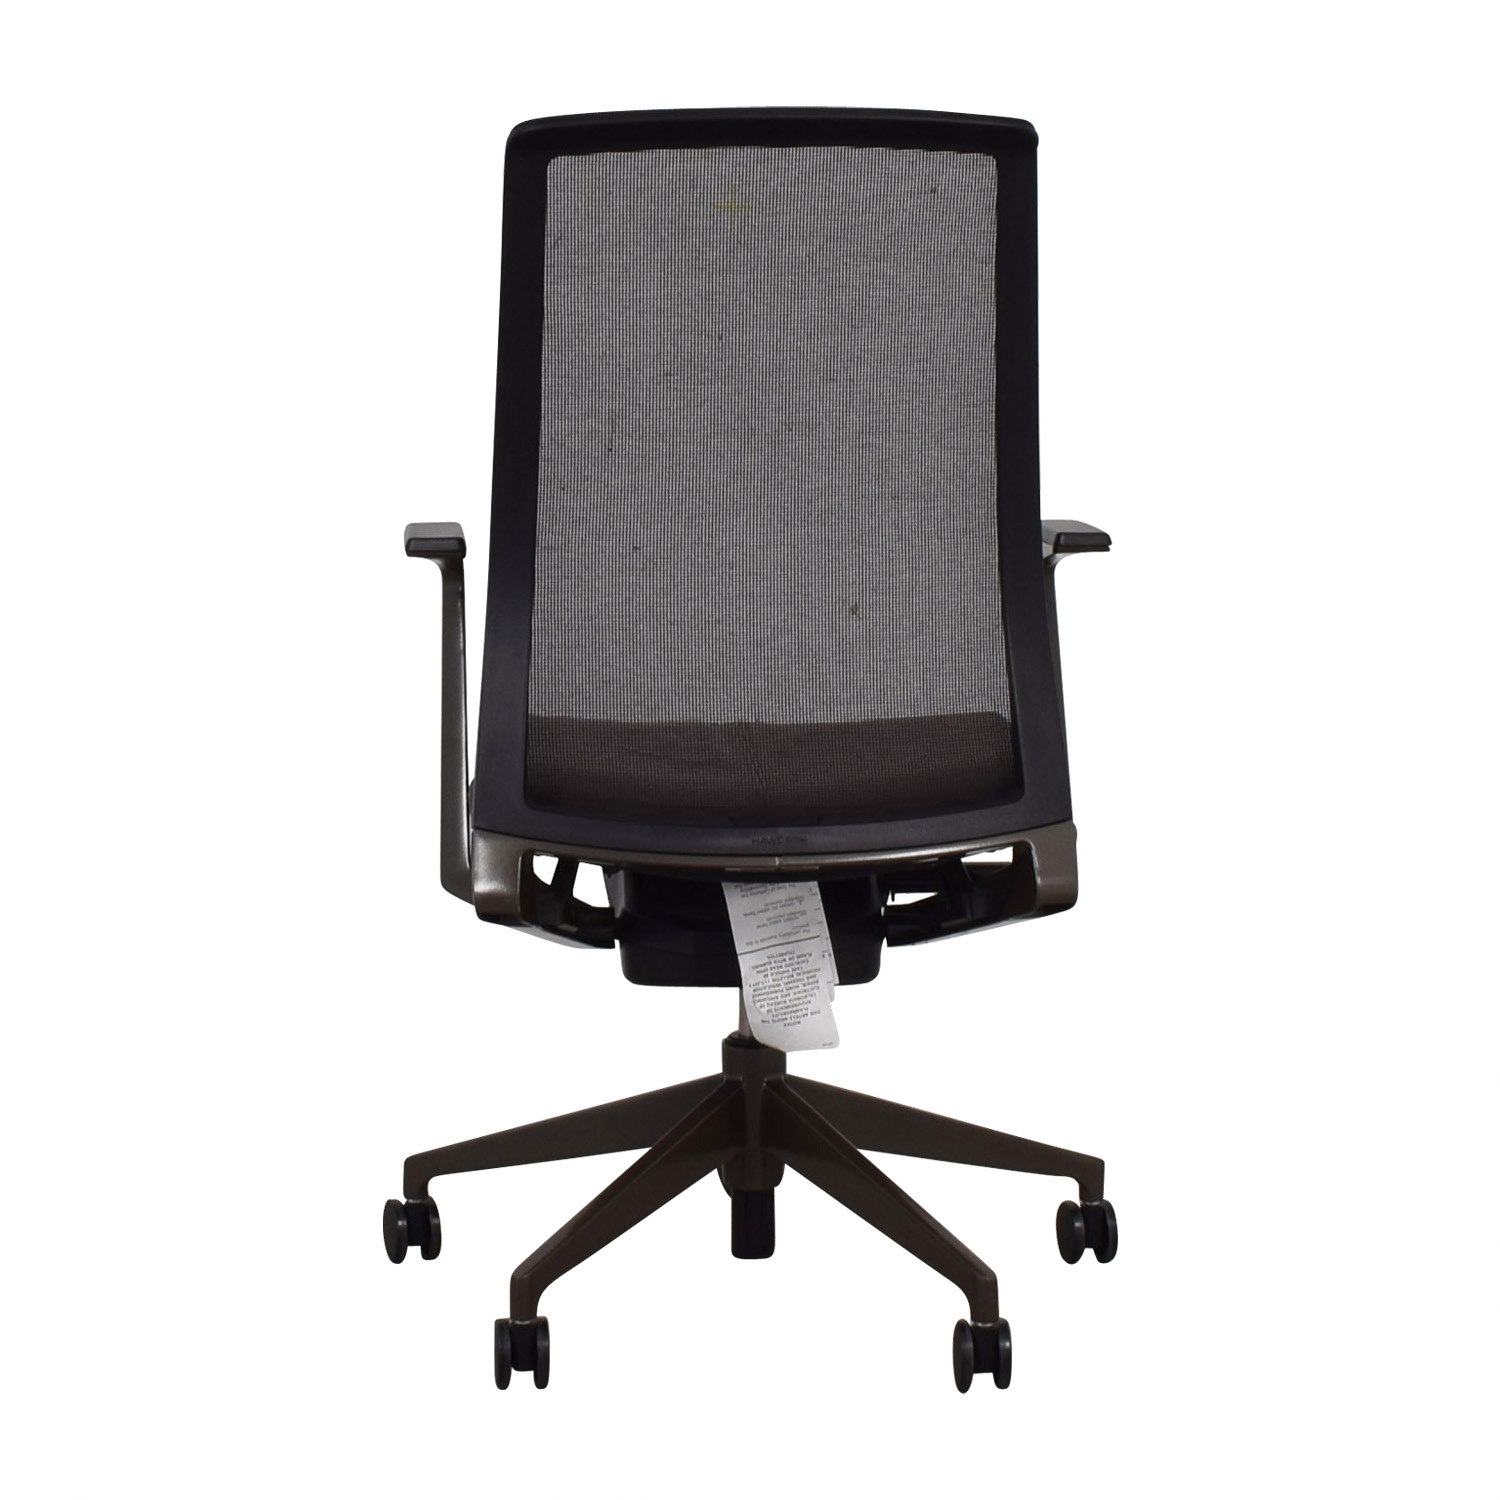 Crate & Barrel Crate & Barrel Black and Brown Haworth Very Task Chair on sale